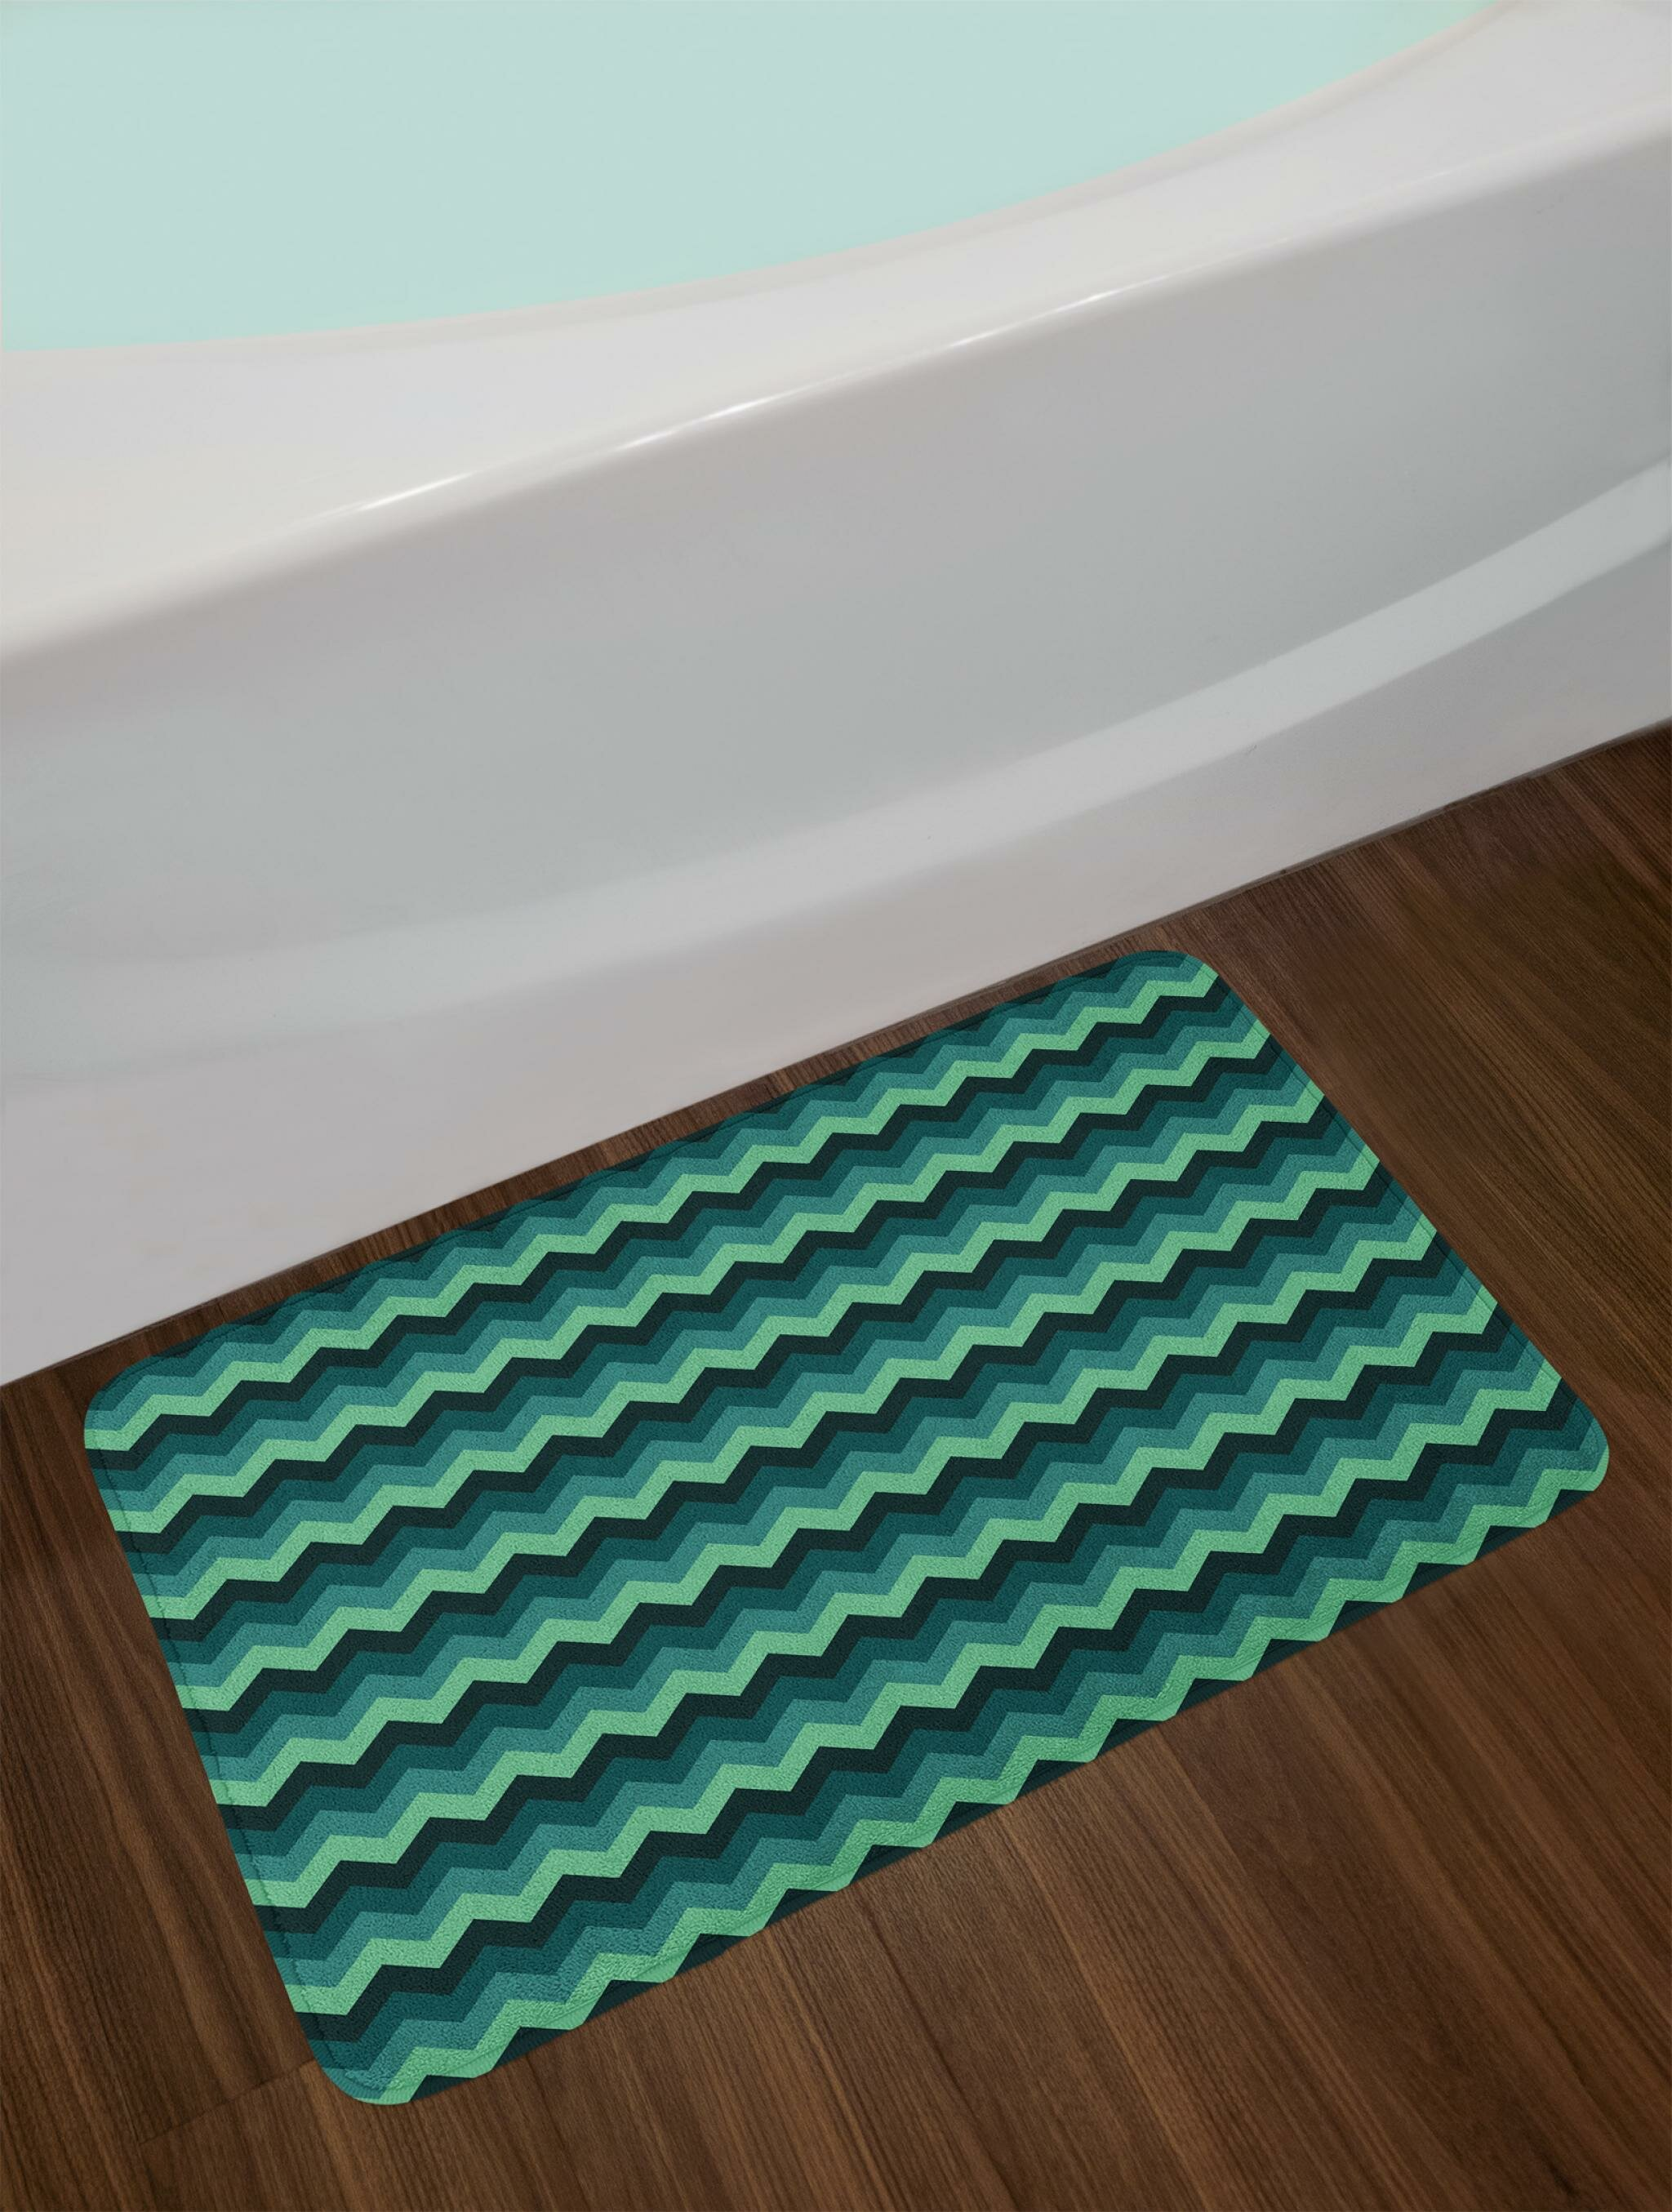 East Urban Home Expressionist Teal Bath Rug | Wayfair